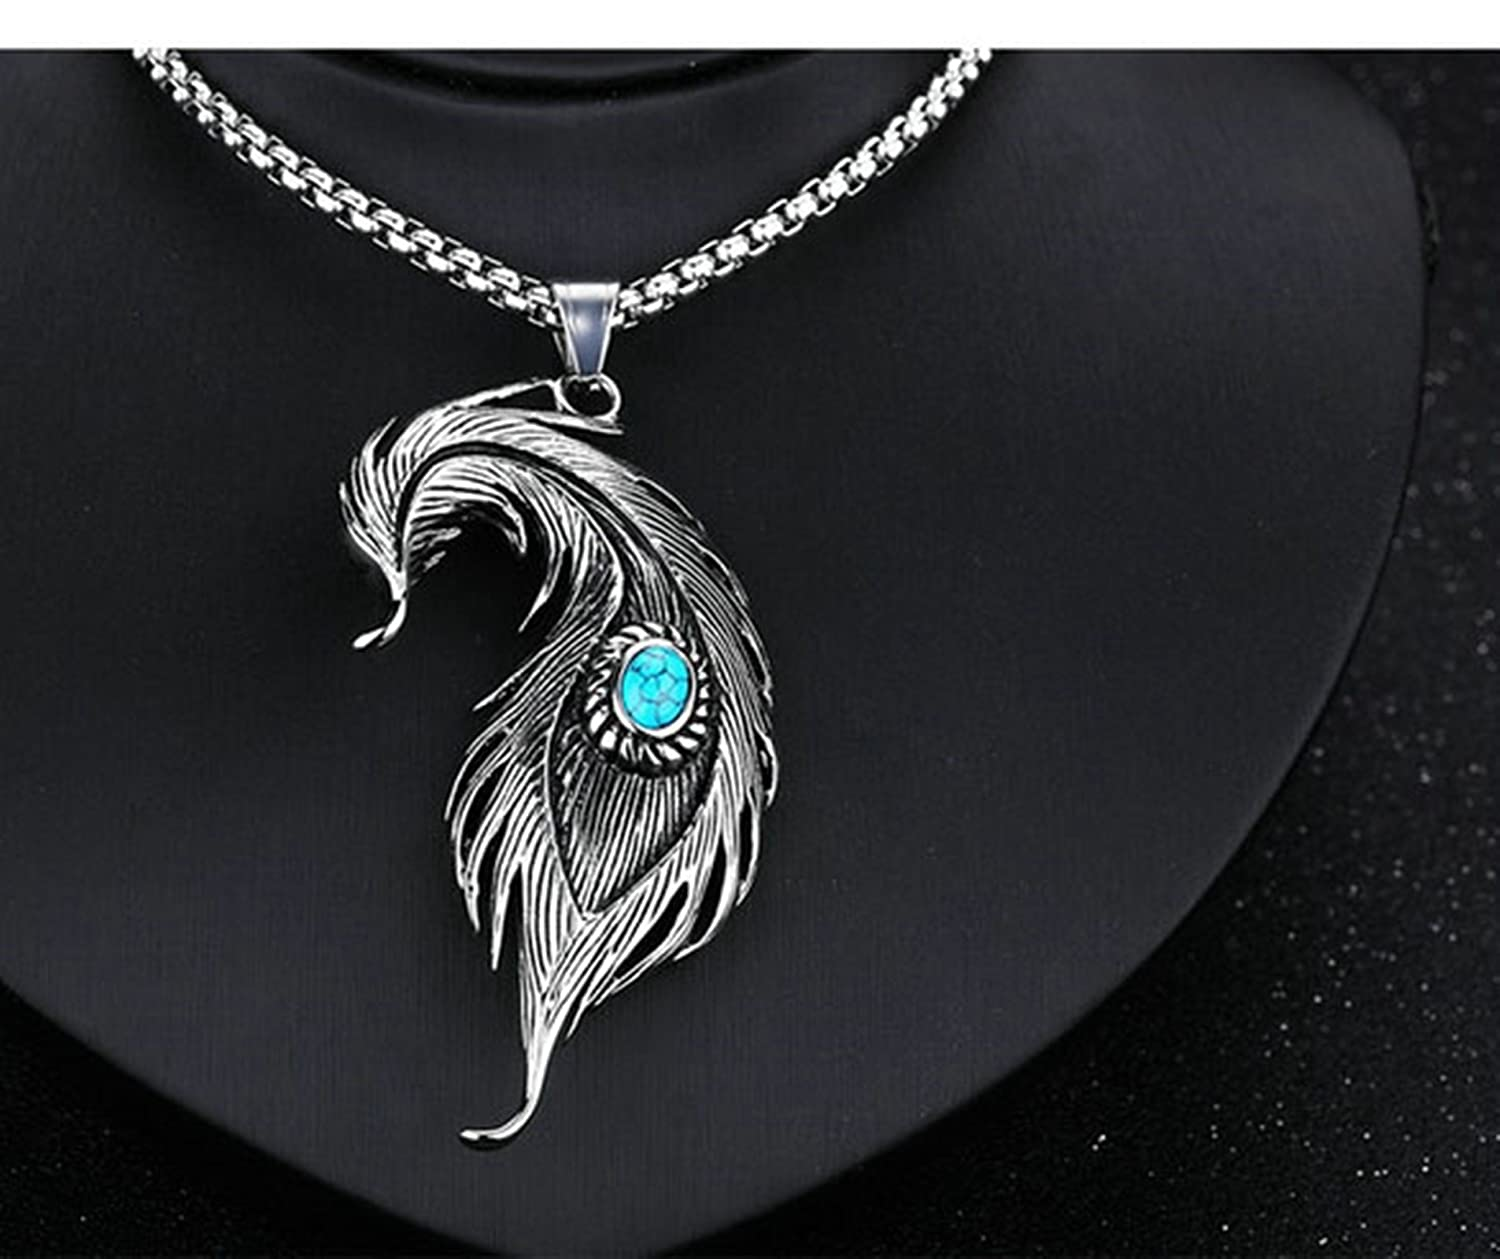 MoAndy Necklace Chain Stainless Steel Necklace for Men Feather